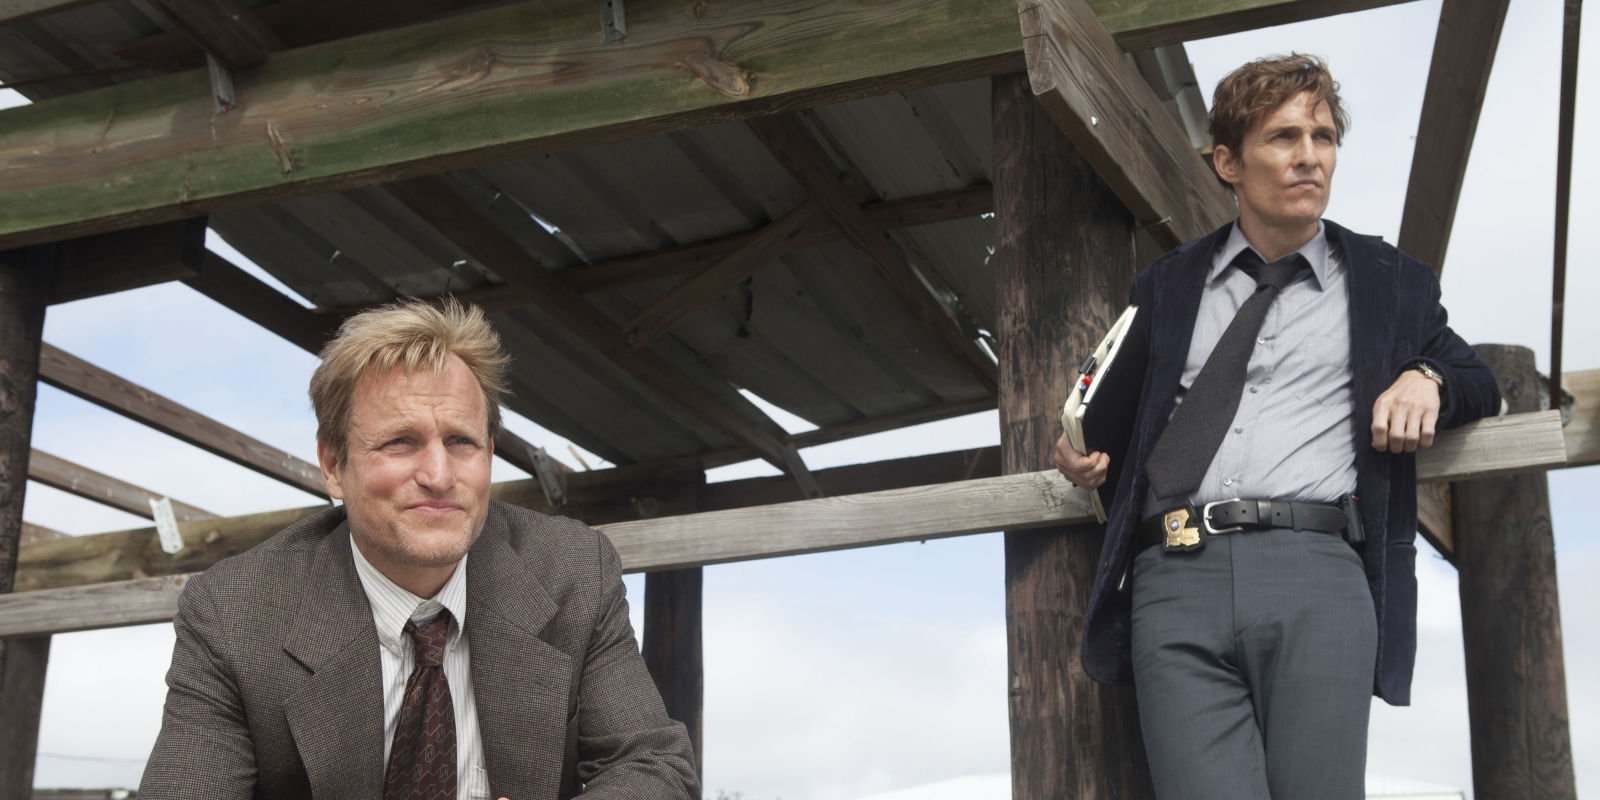 True Detective season 3 isn't returning for a long time